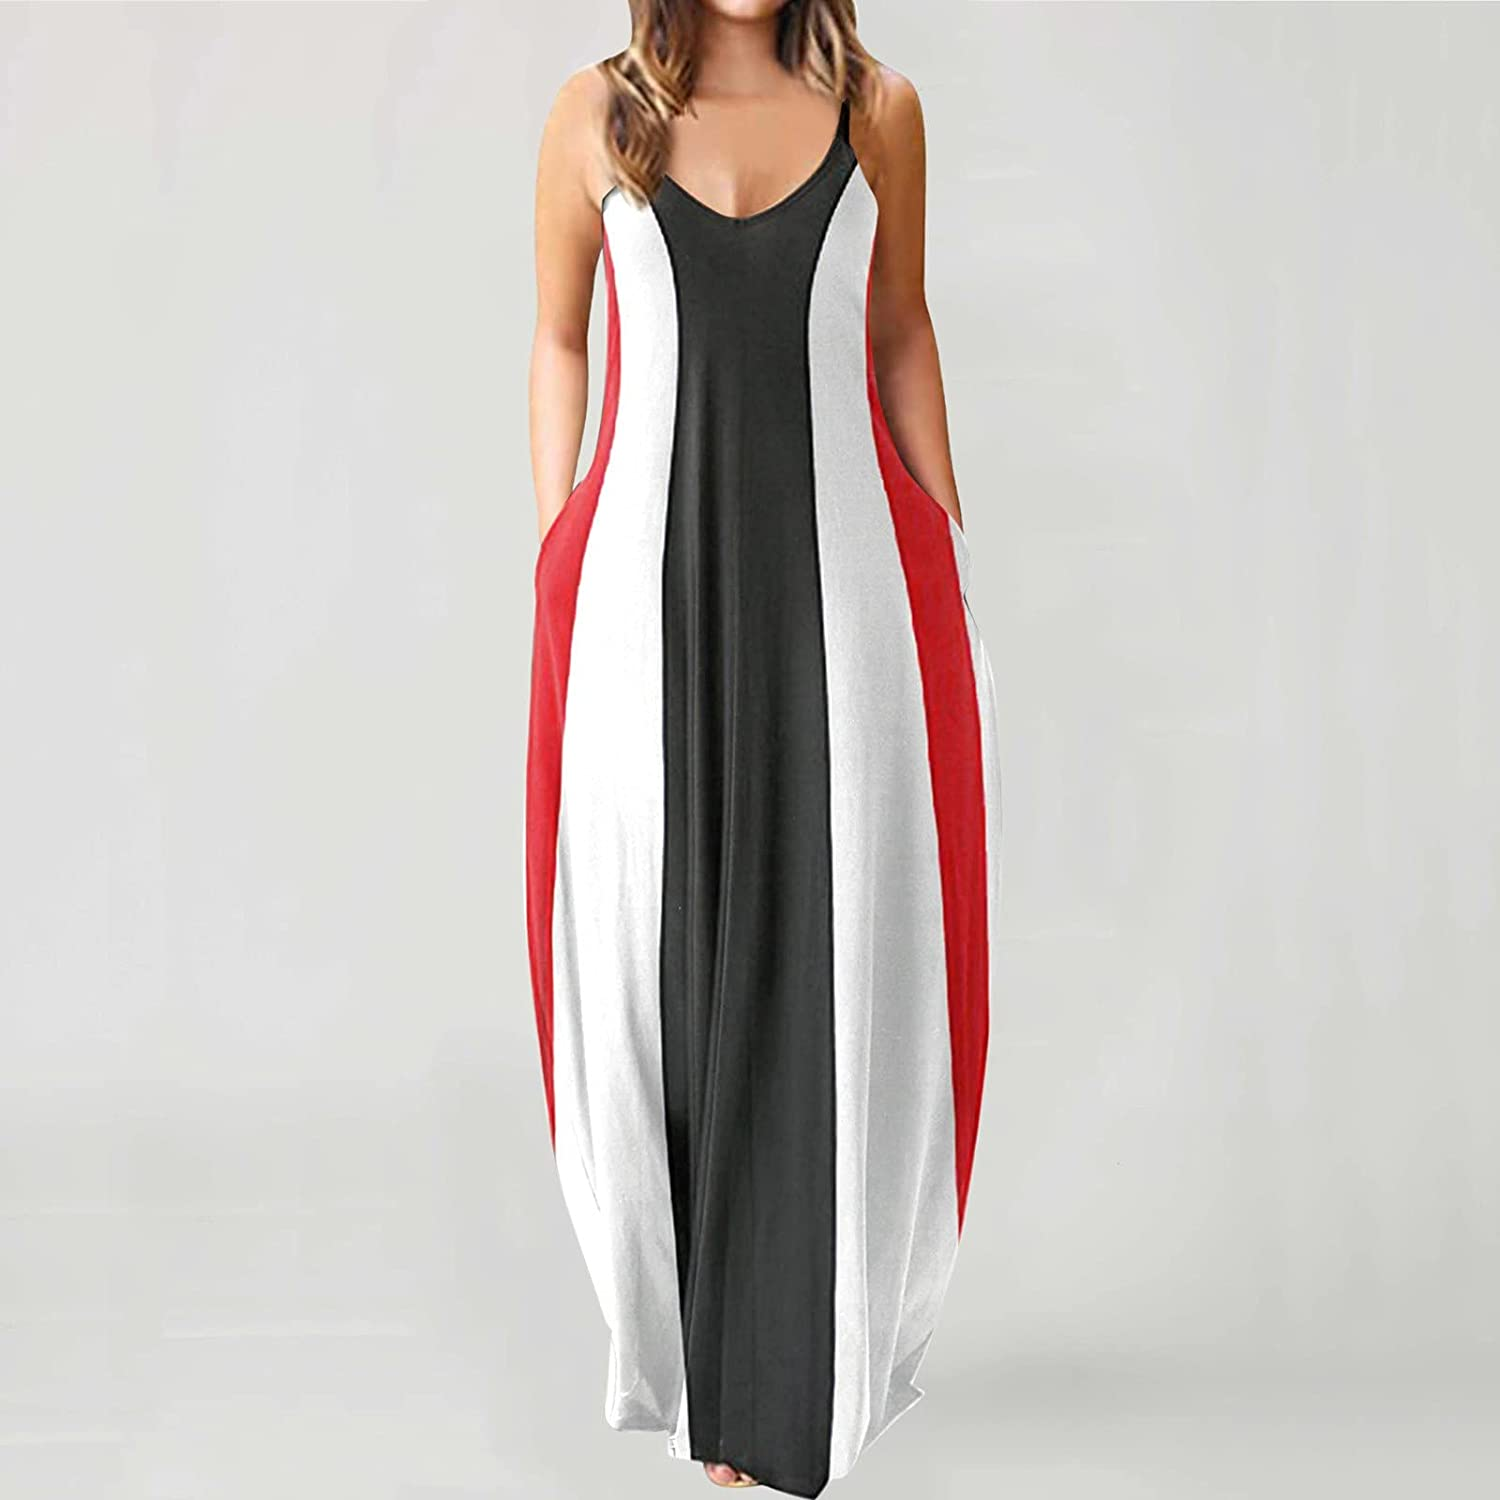 TAYBAGH Dresses for Women Floral Printed Beach Long Maxi Dress Casual Summer Sleeveless Loose Cami Sundress with Pockets